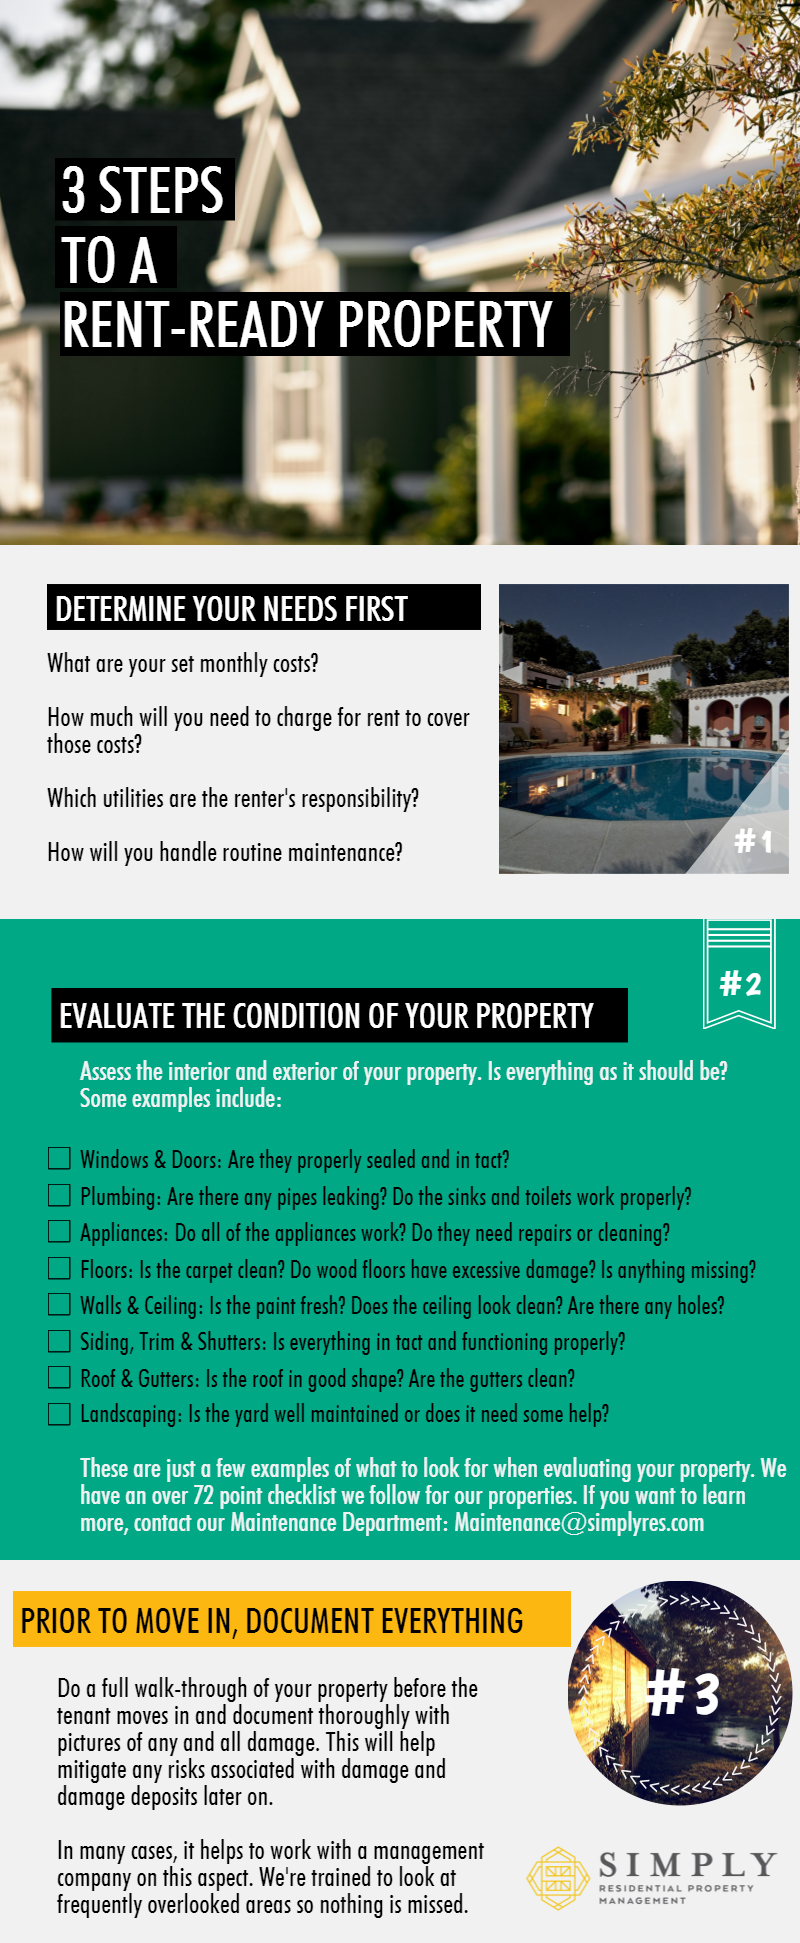 3 steps to a rent-ready property